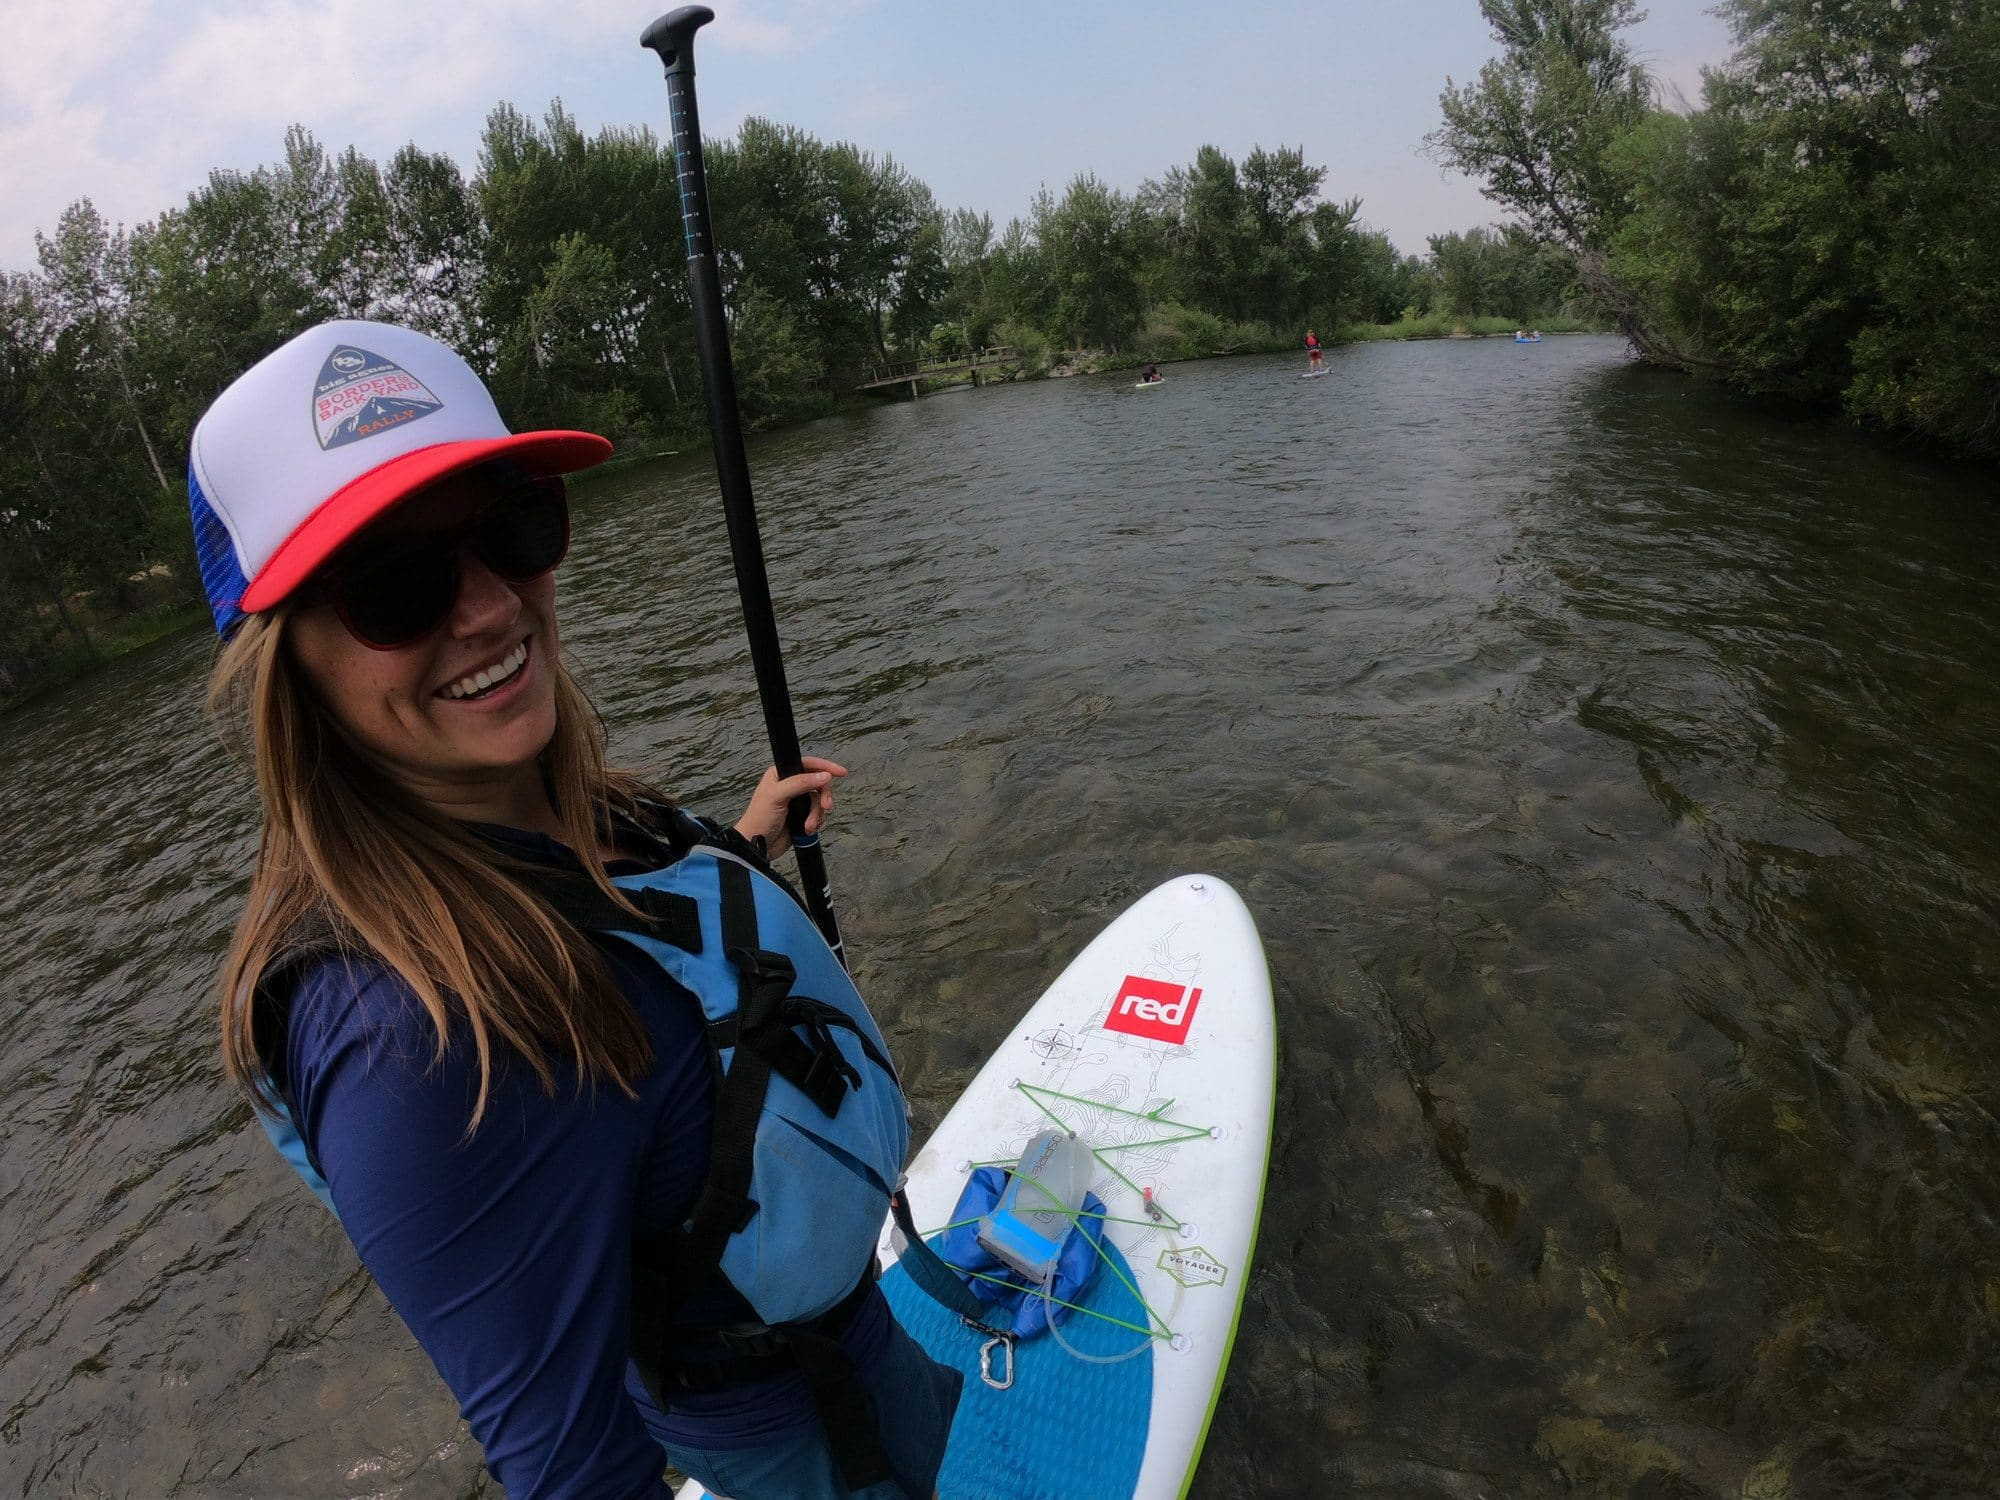 Stand-up paddle boarding on the Boise River